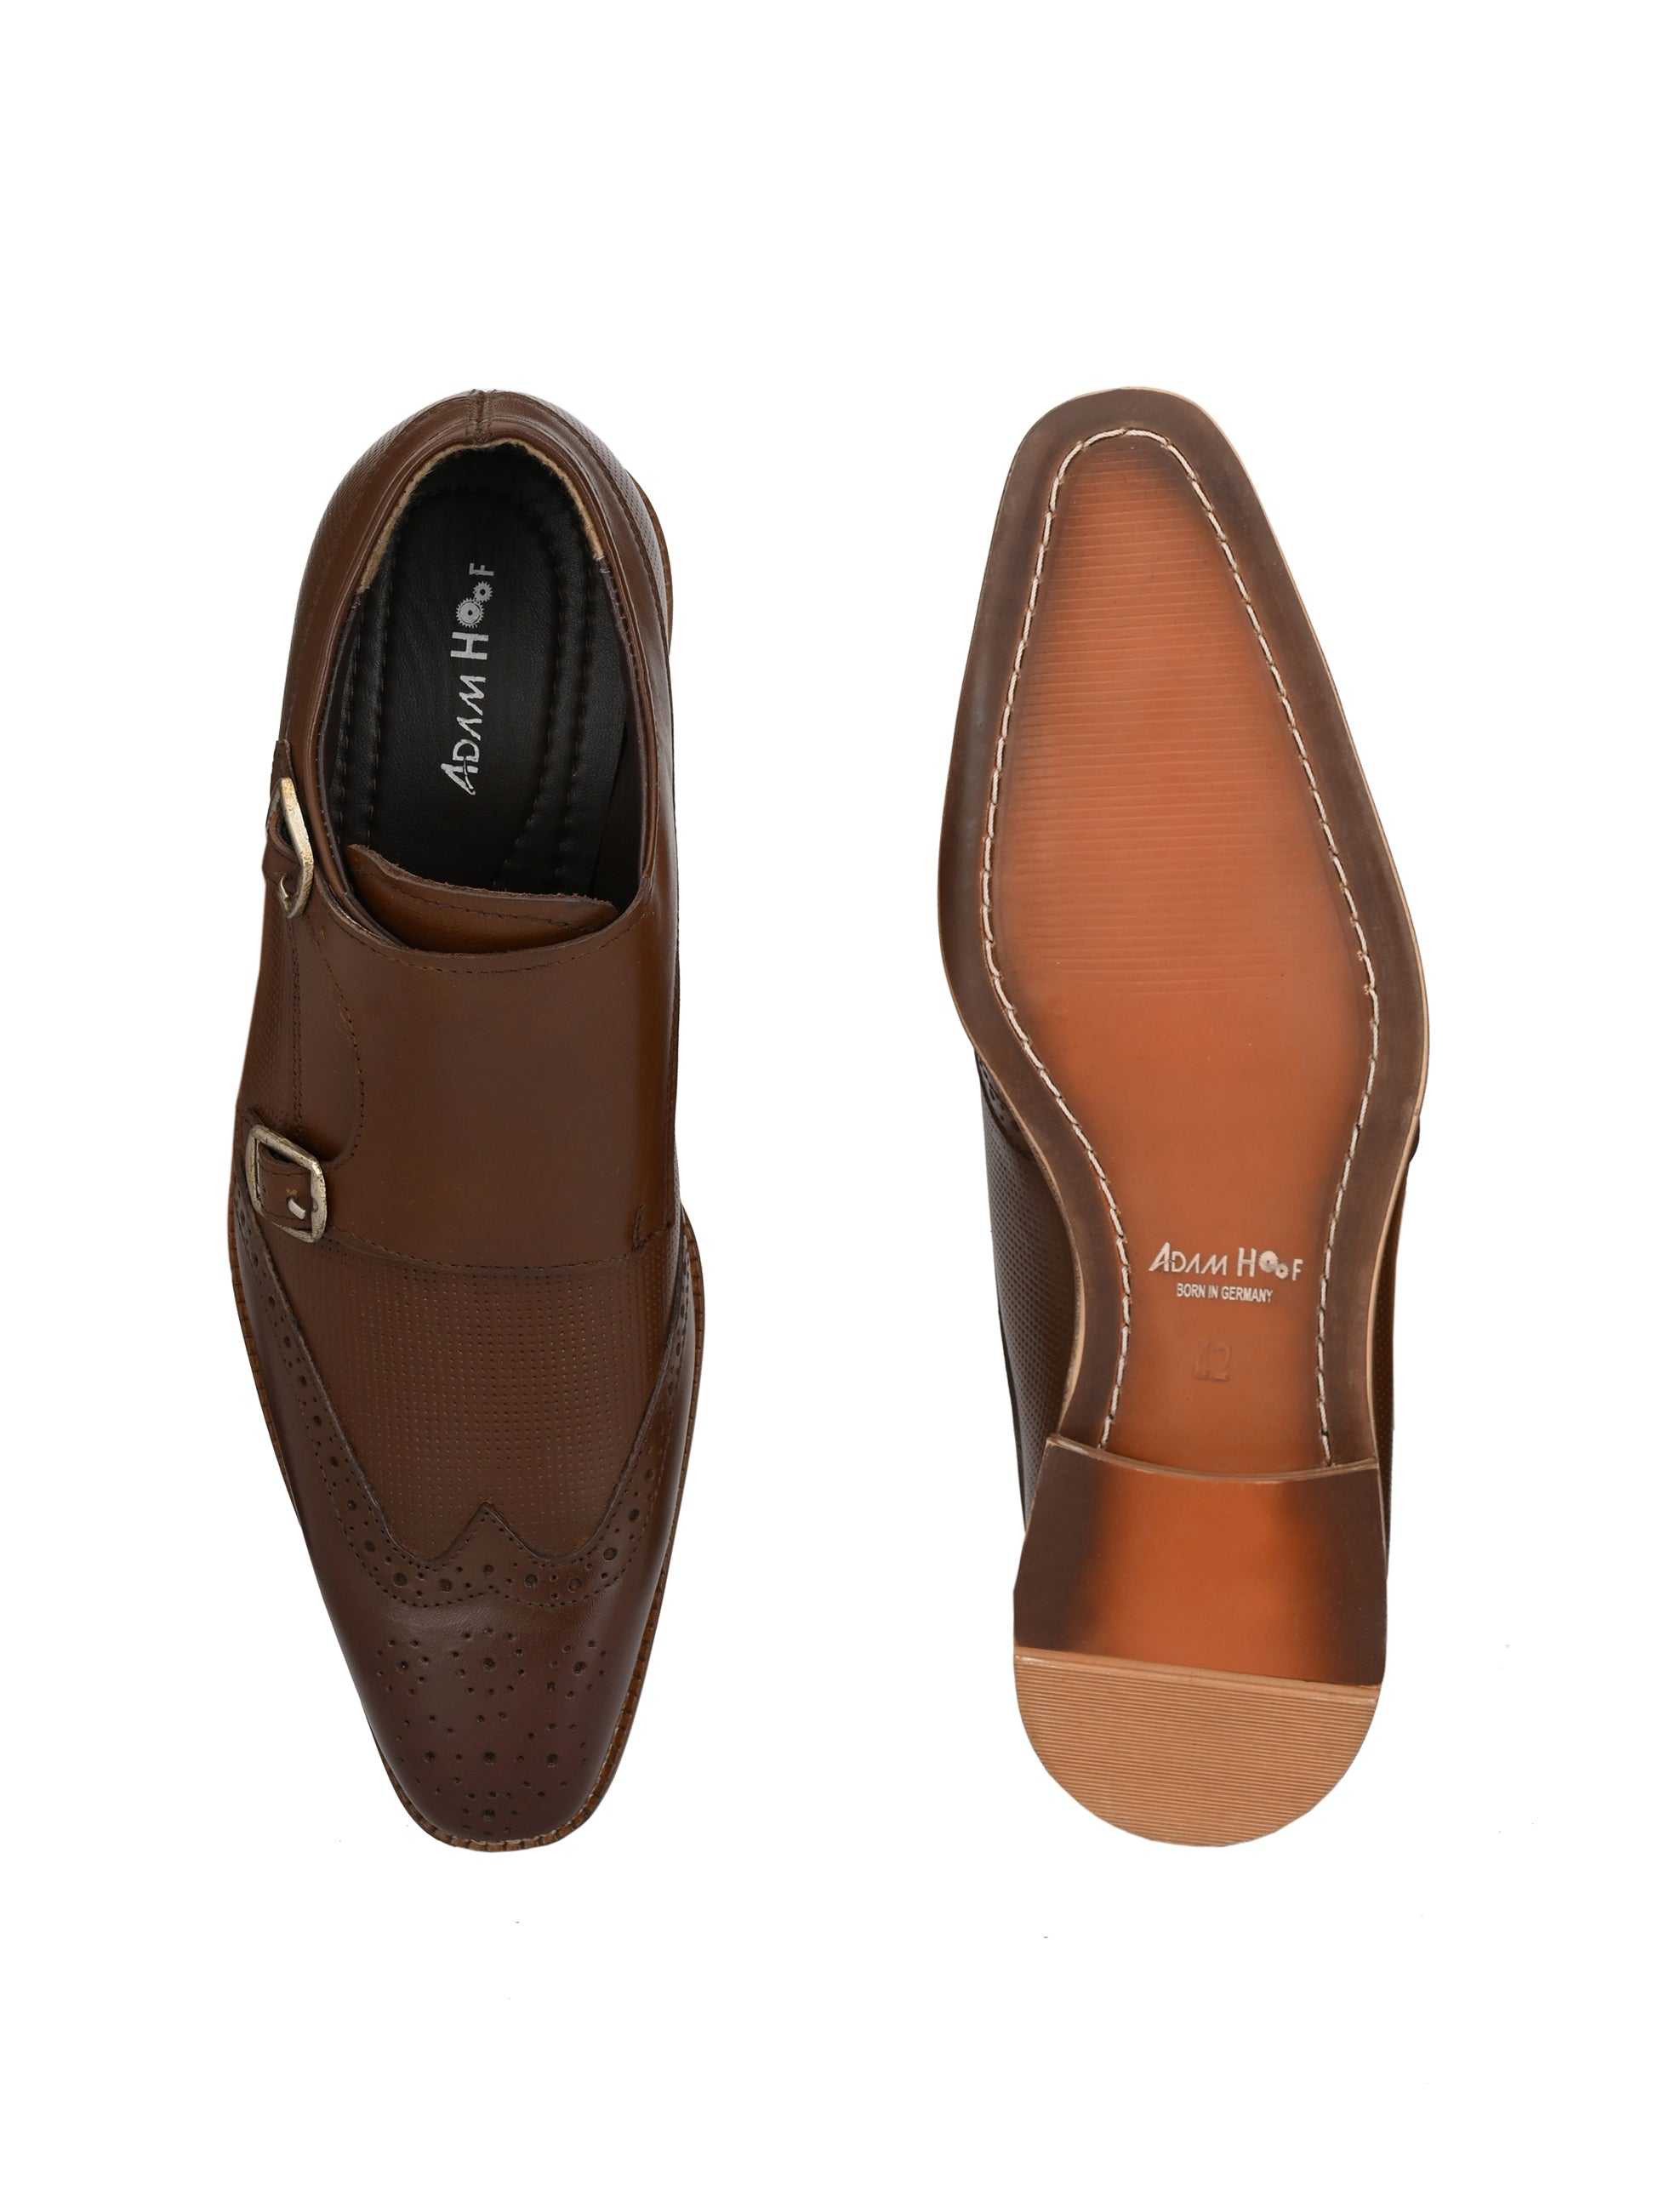 Brown Leather Monk Brogues - shoegaro